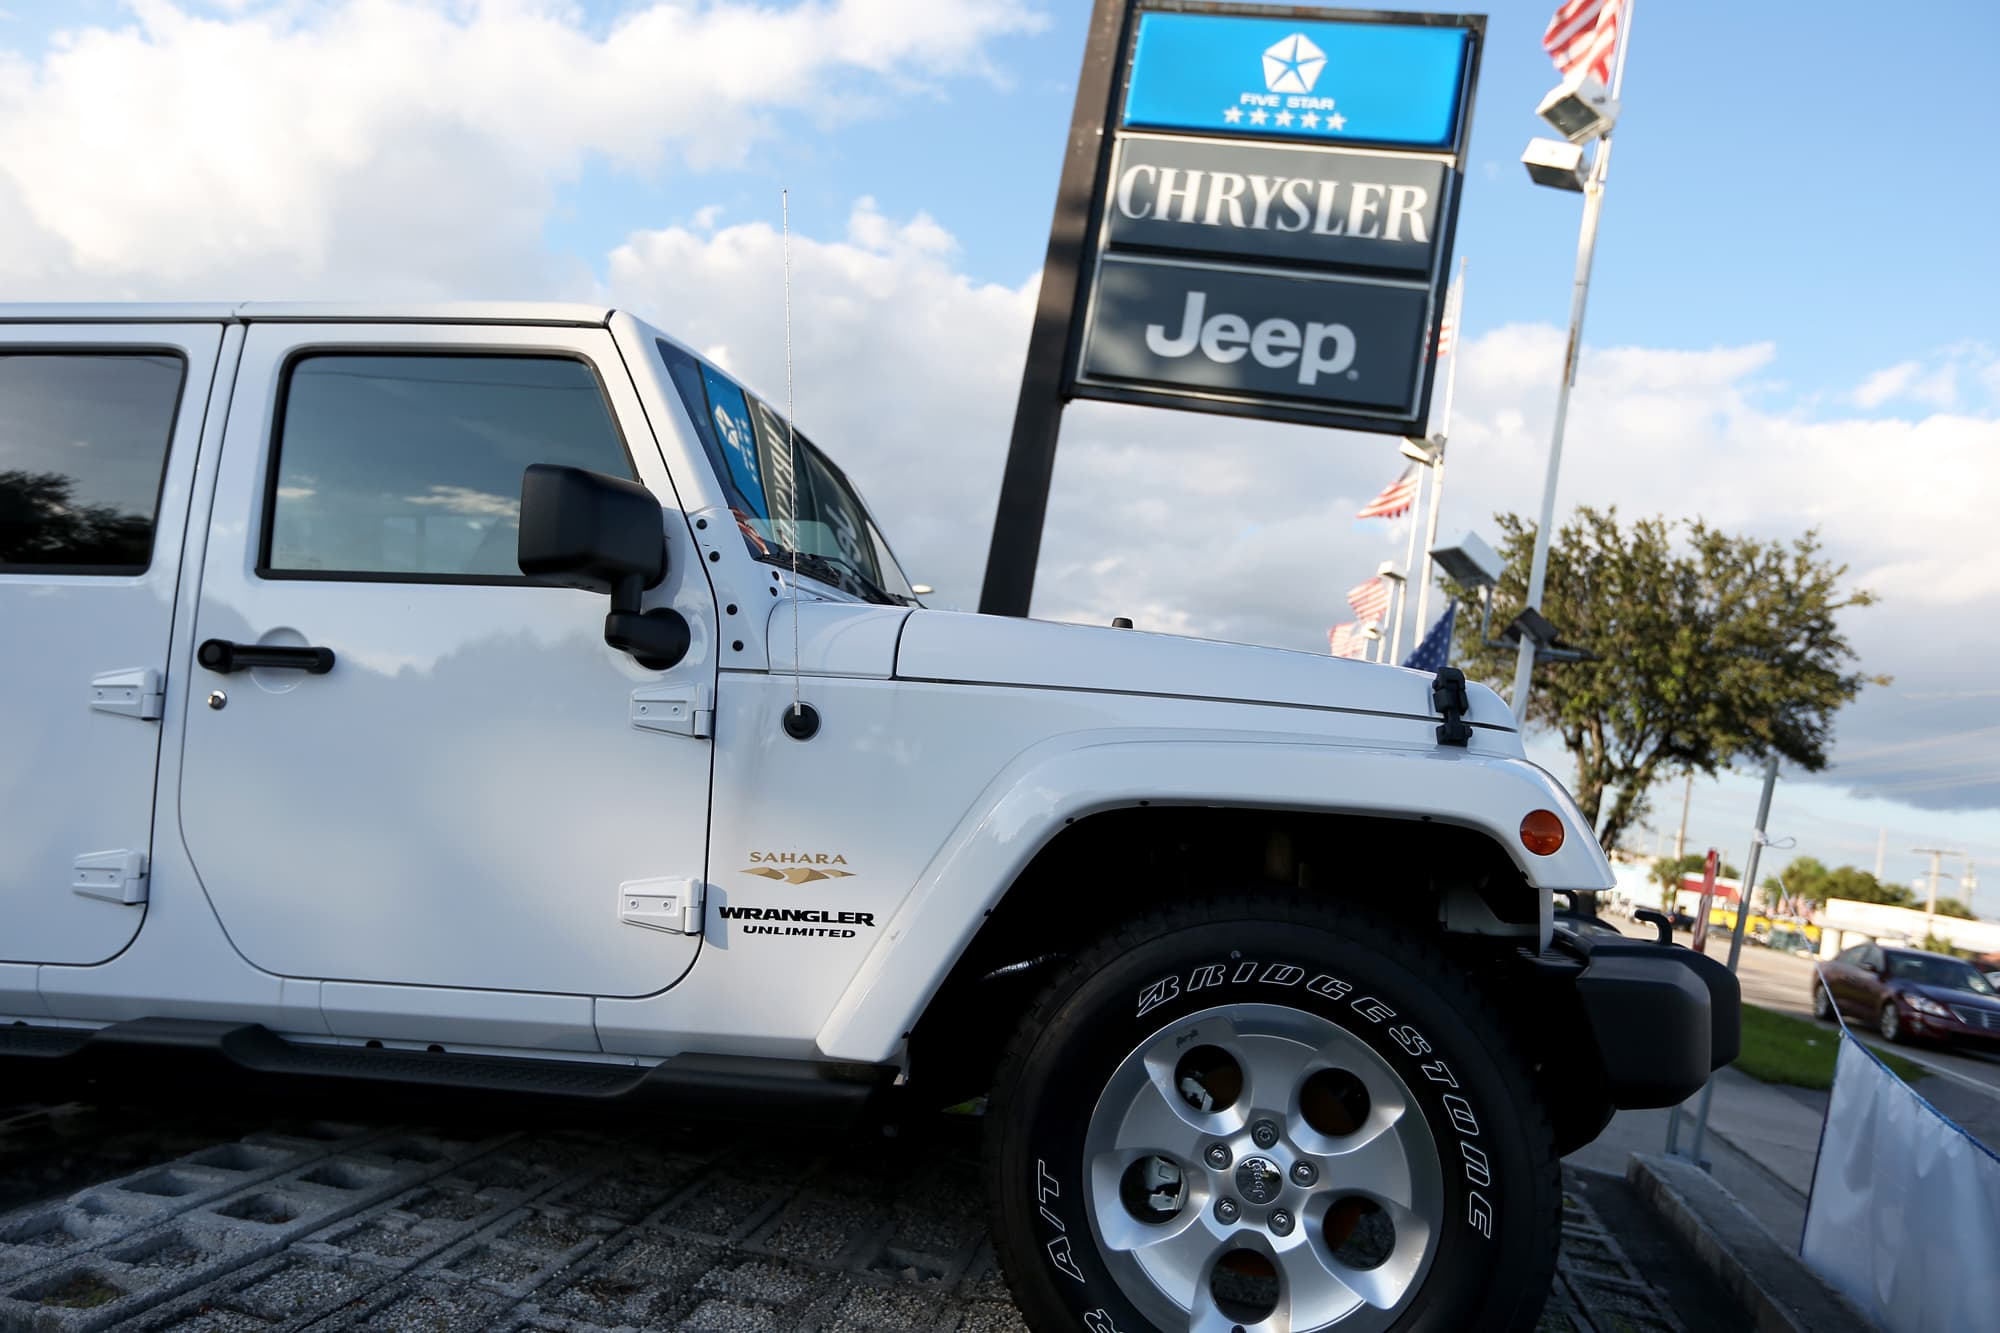 Jeep is worth more than fiat chrysler says morgan stanley biocorpaavc